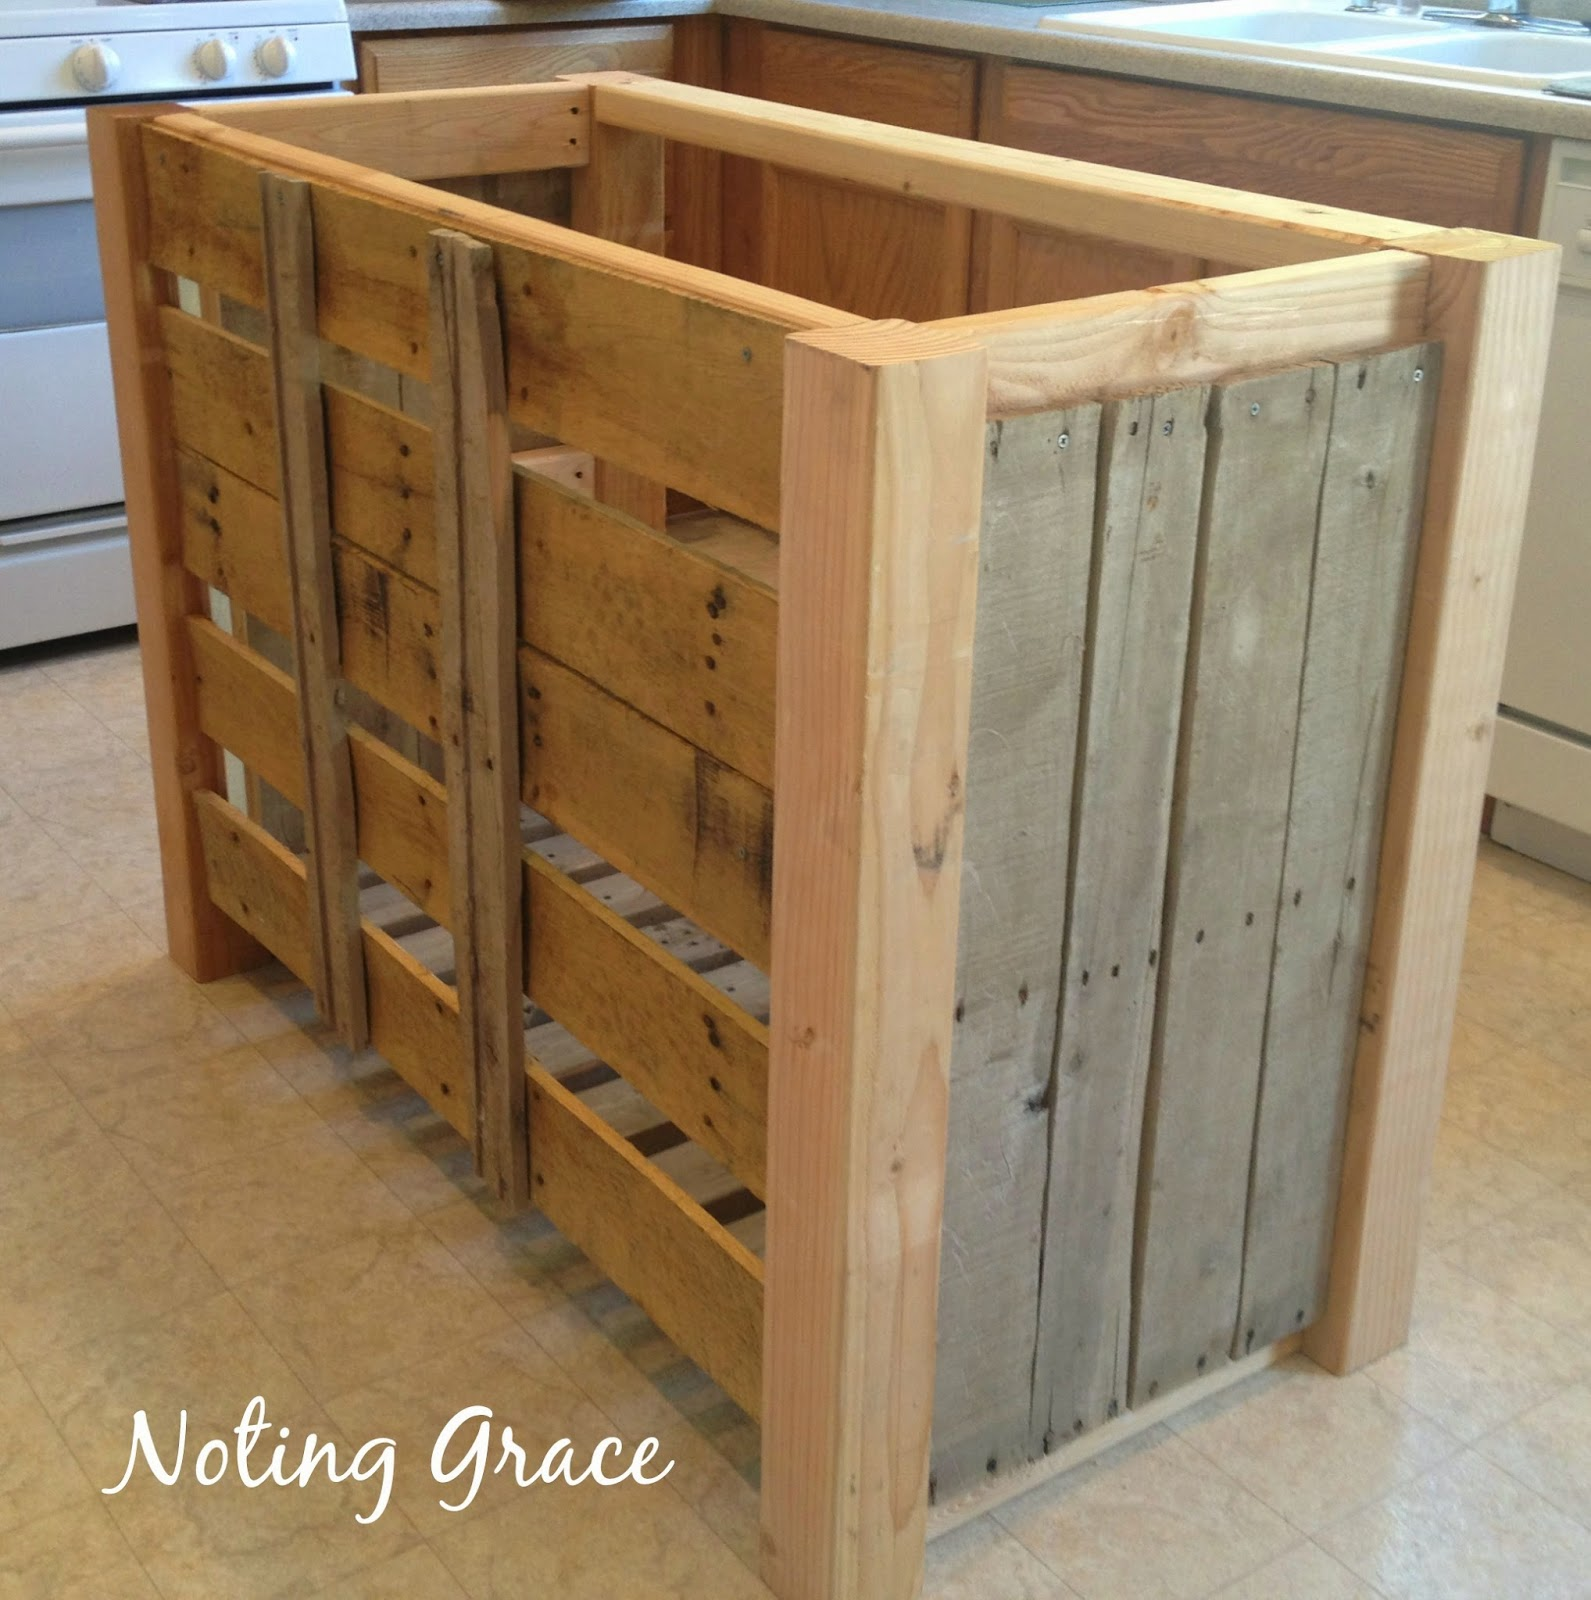 Noting grace diy pallet kitchen island for less than 50 for Make a kitchen island out of pallets